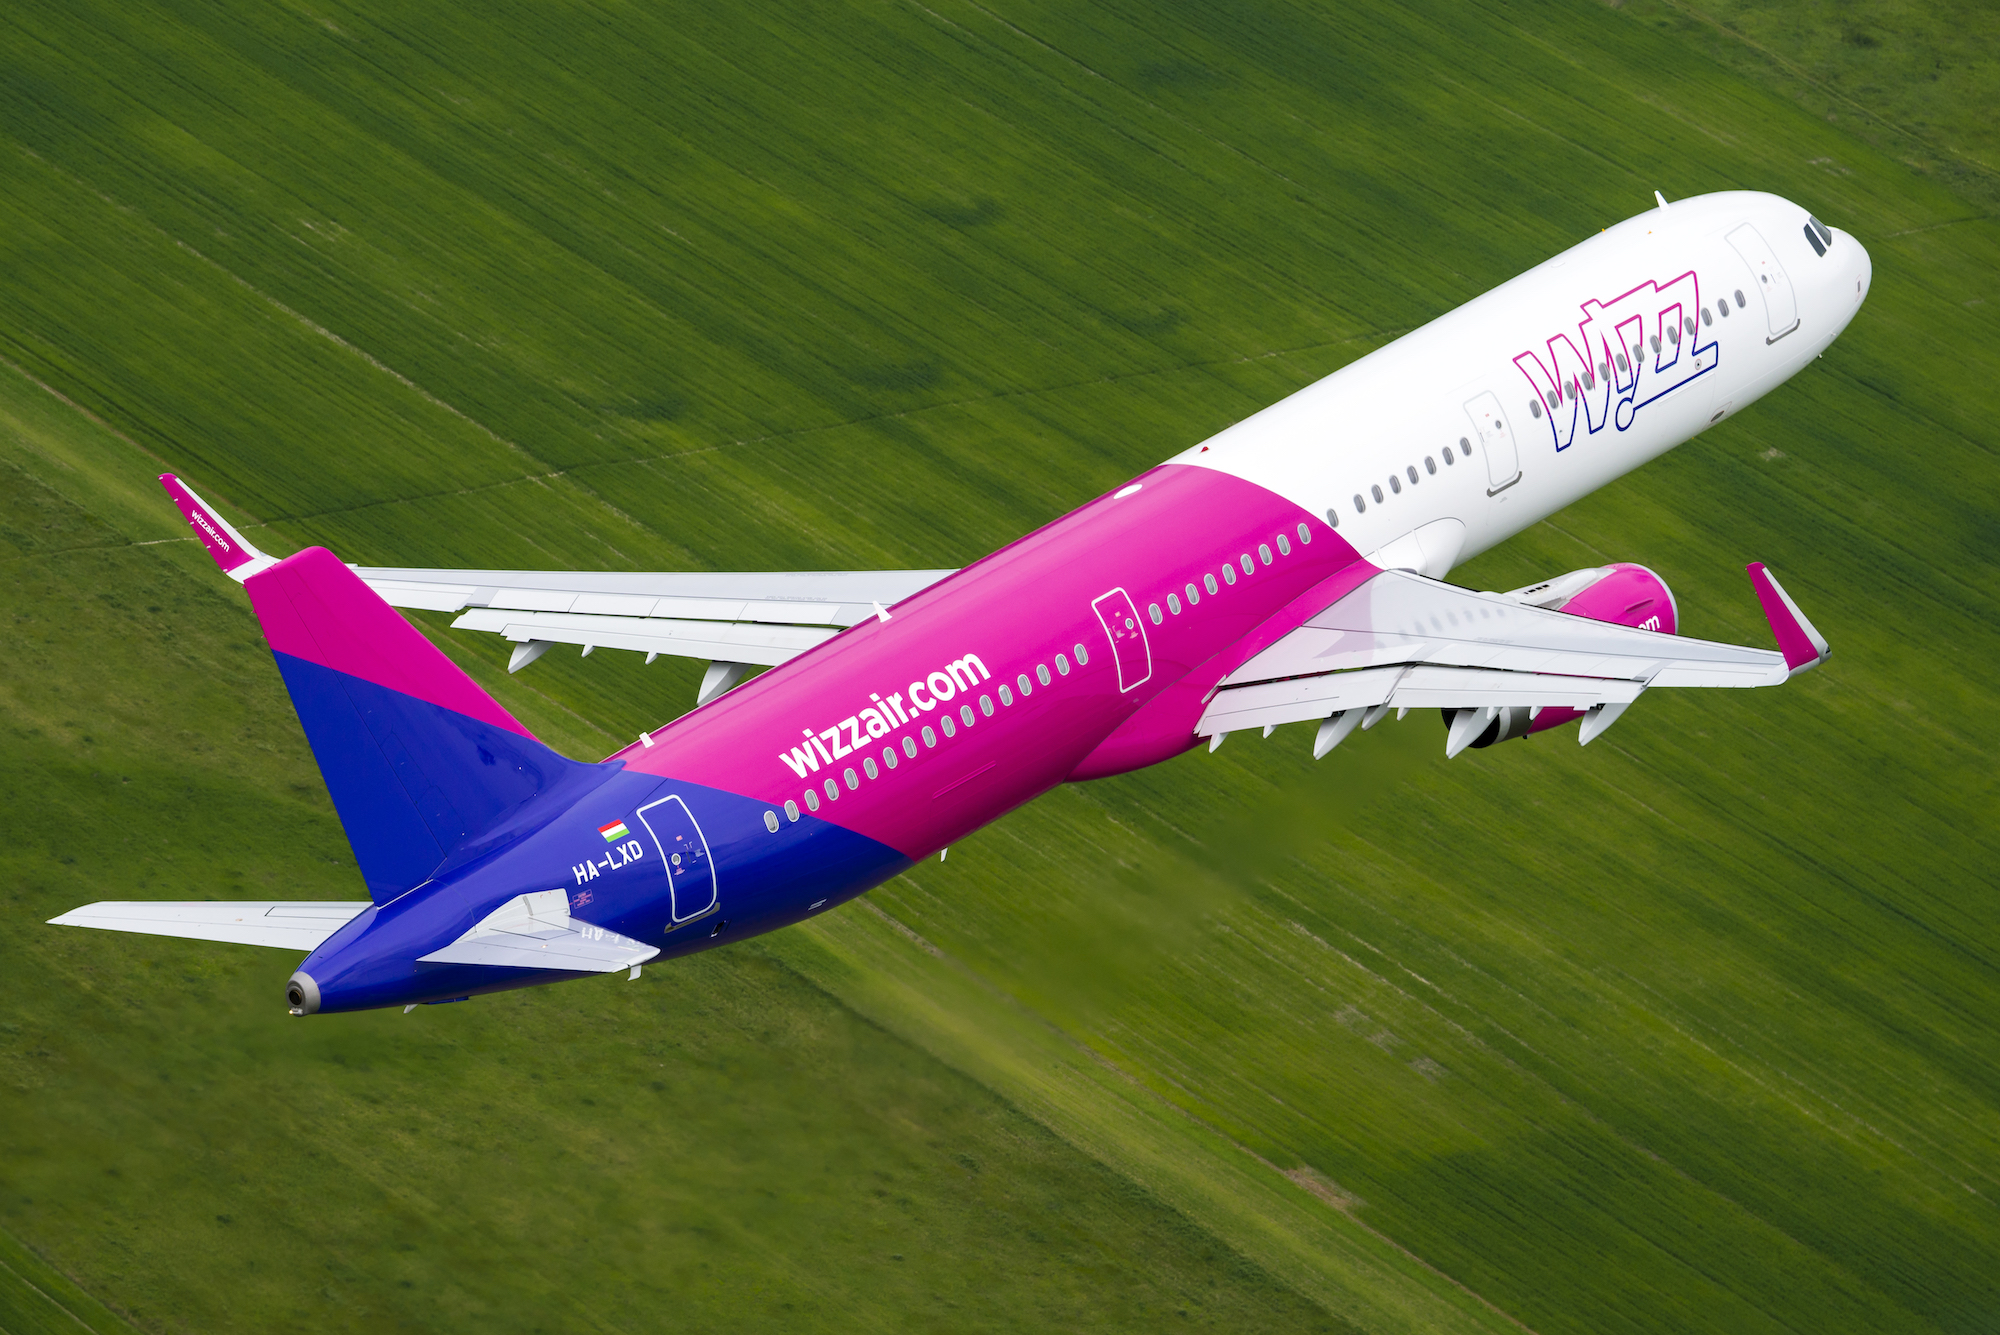 Budget airline of UAE adds news routes to Europe and Middle East